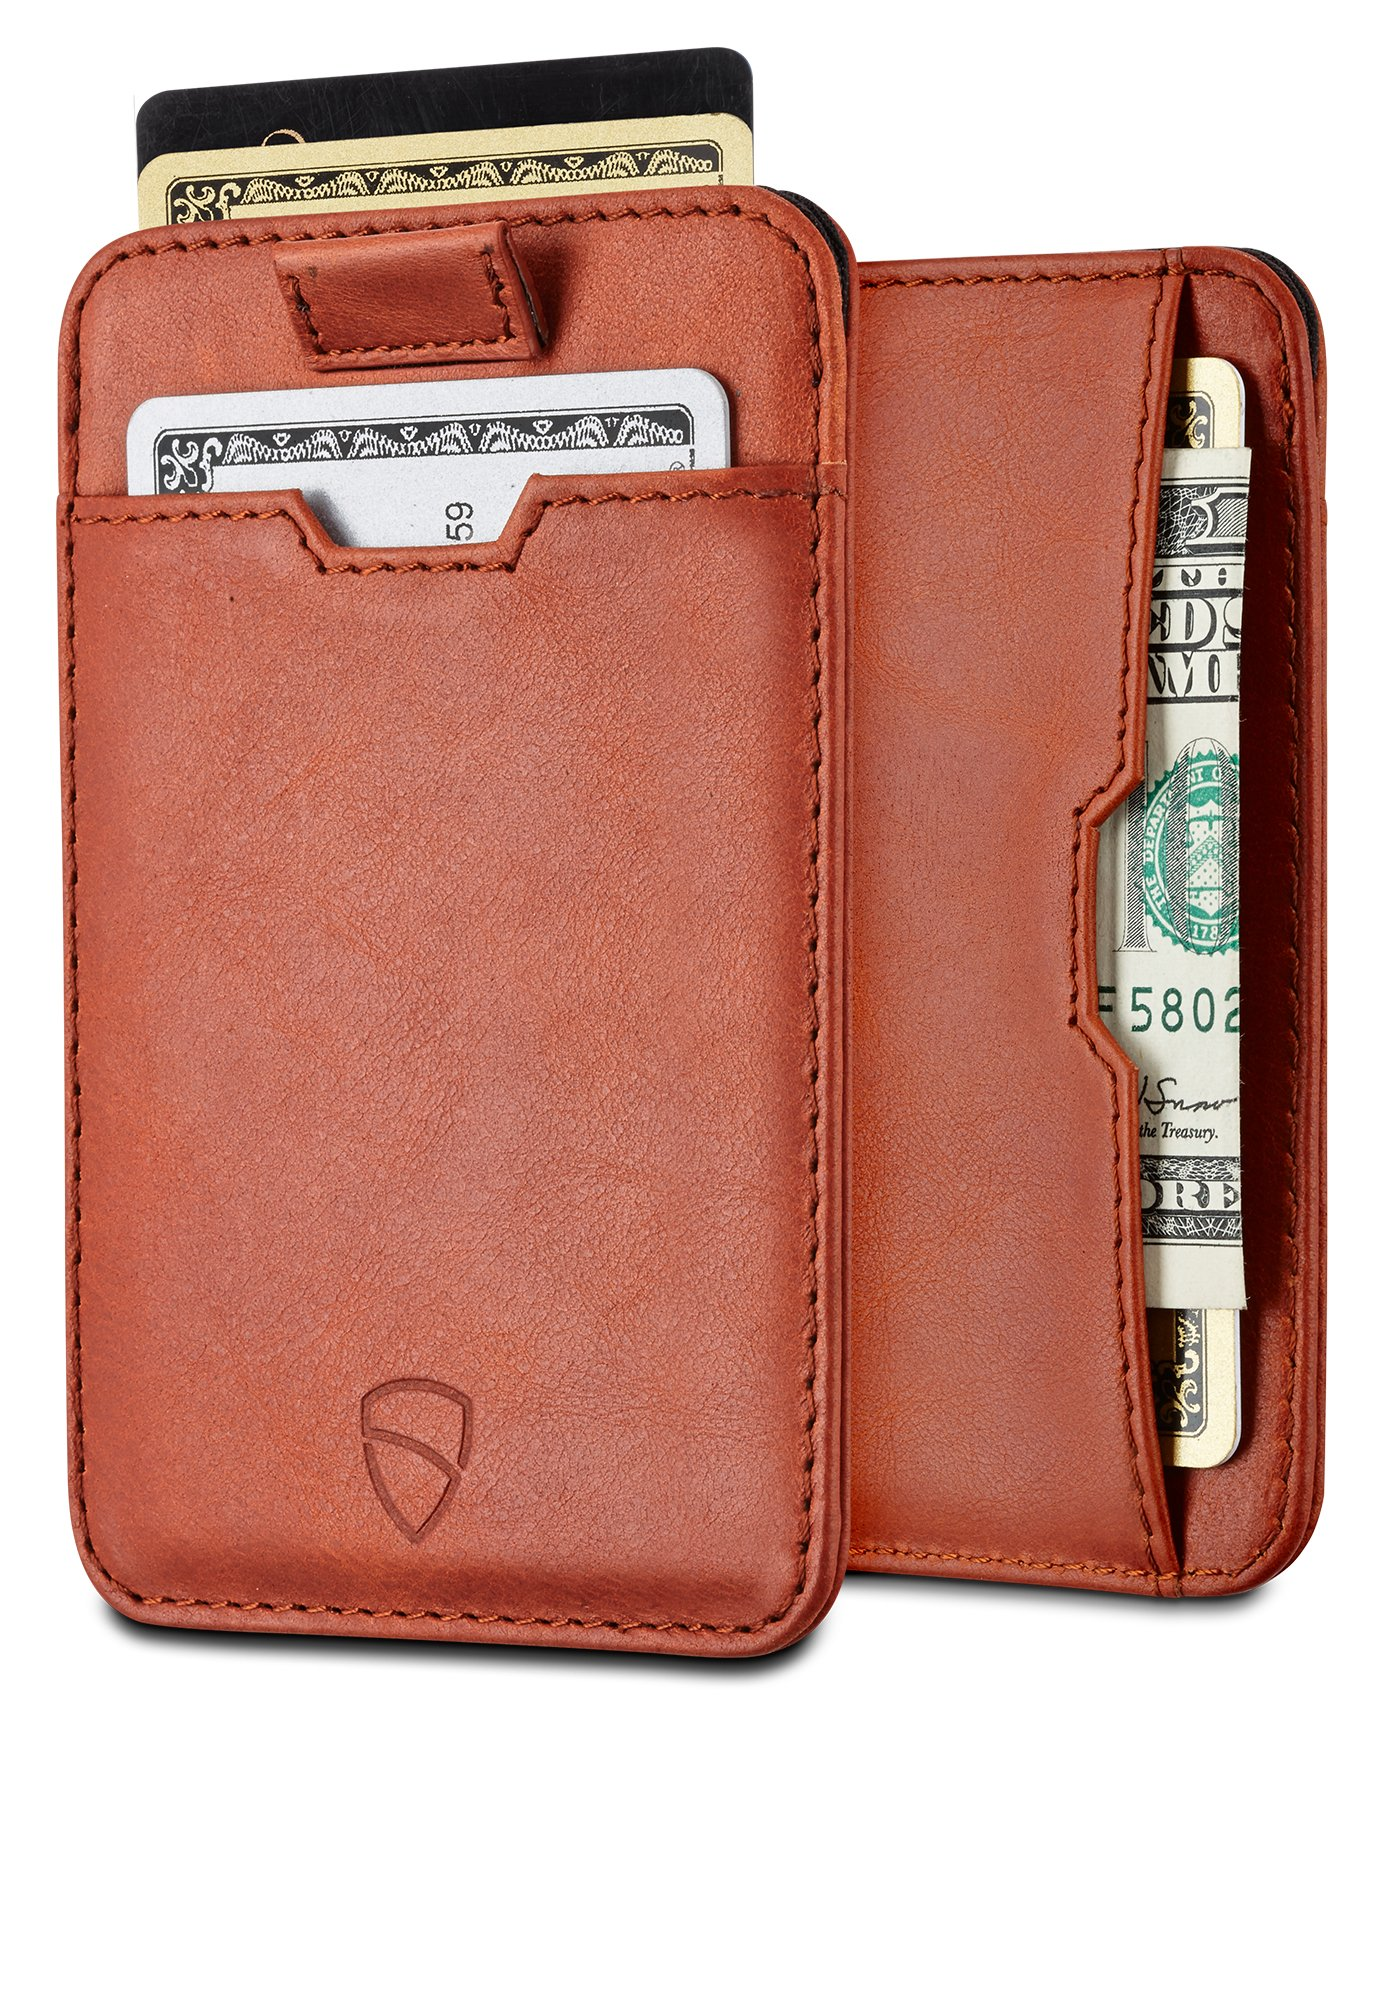 Chelsea Slim Card Sleeve Wallet with RFID Protection by Vaultskin – Top Quality Italian Leather - Ultra Thin Card Holder Design For Up To 10 Cards (Cognac)